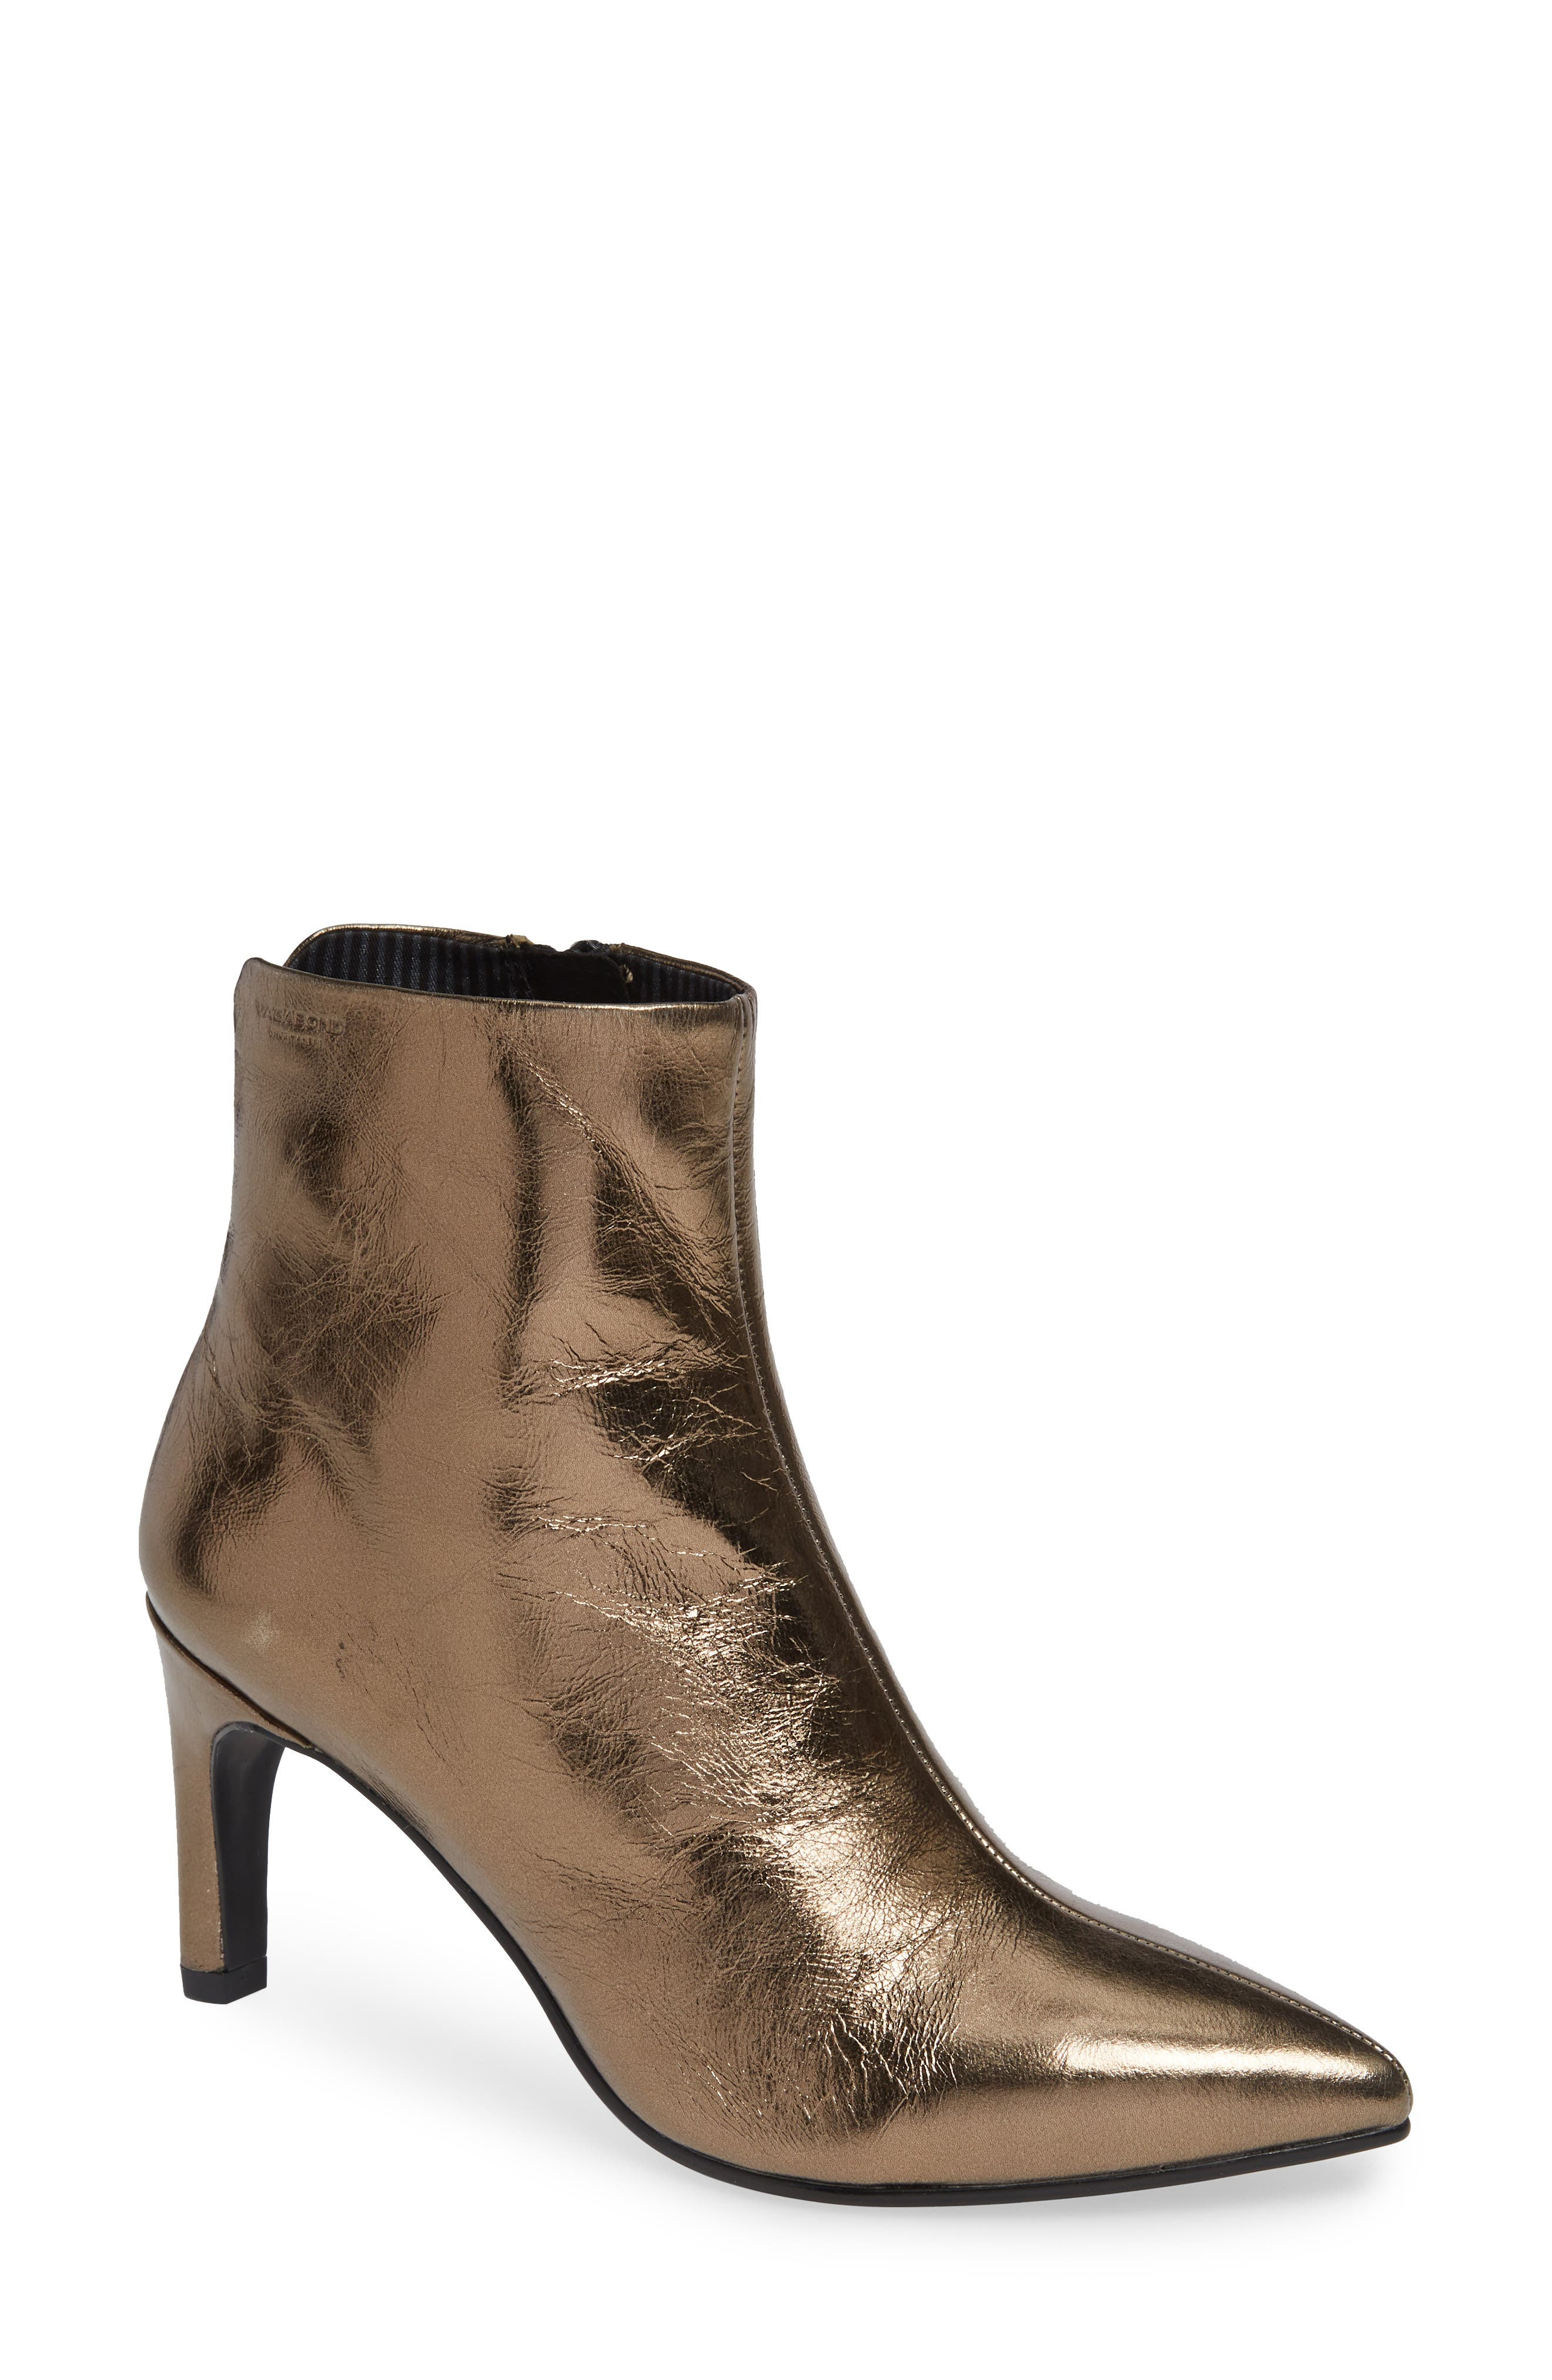 VAGABOND Shoemakers Whitney Pointy Toe Bootie, Main, color, BRONZE LEATHER